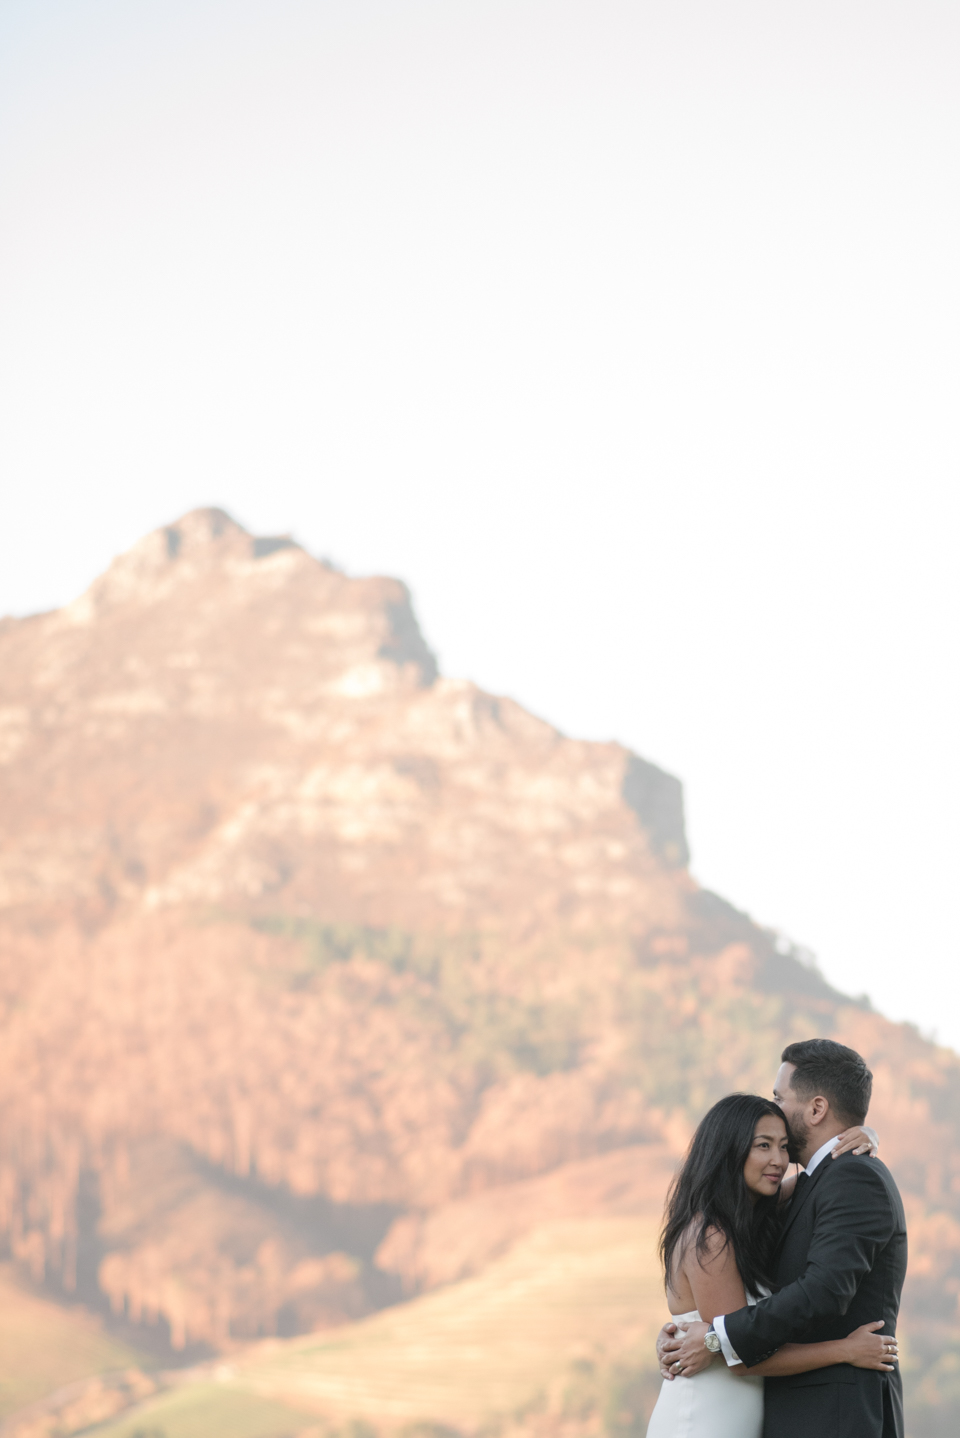 Grace and Alfonso wedding Clouds Estate Stellenbosch South Africa shot by dna photographers 813.jpg